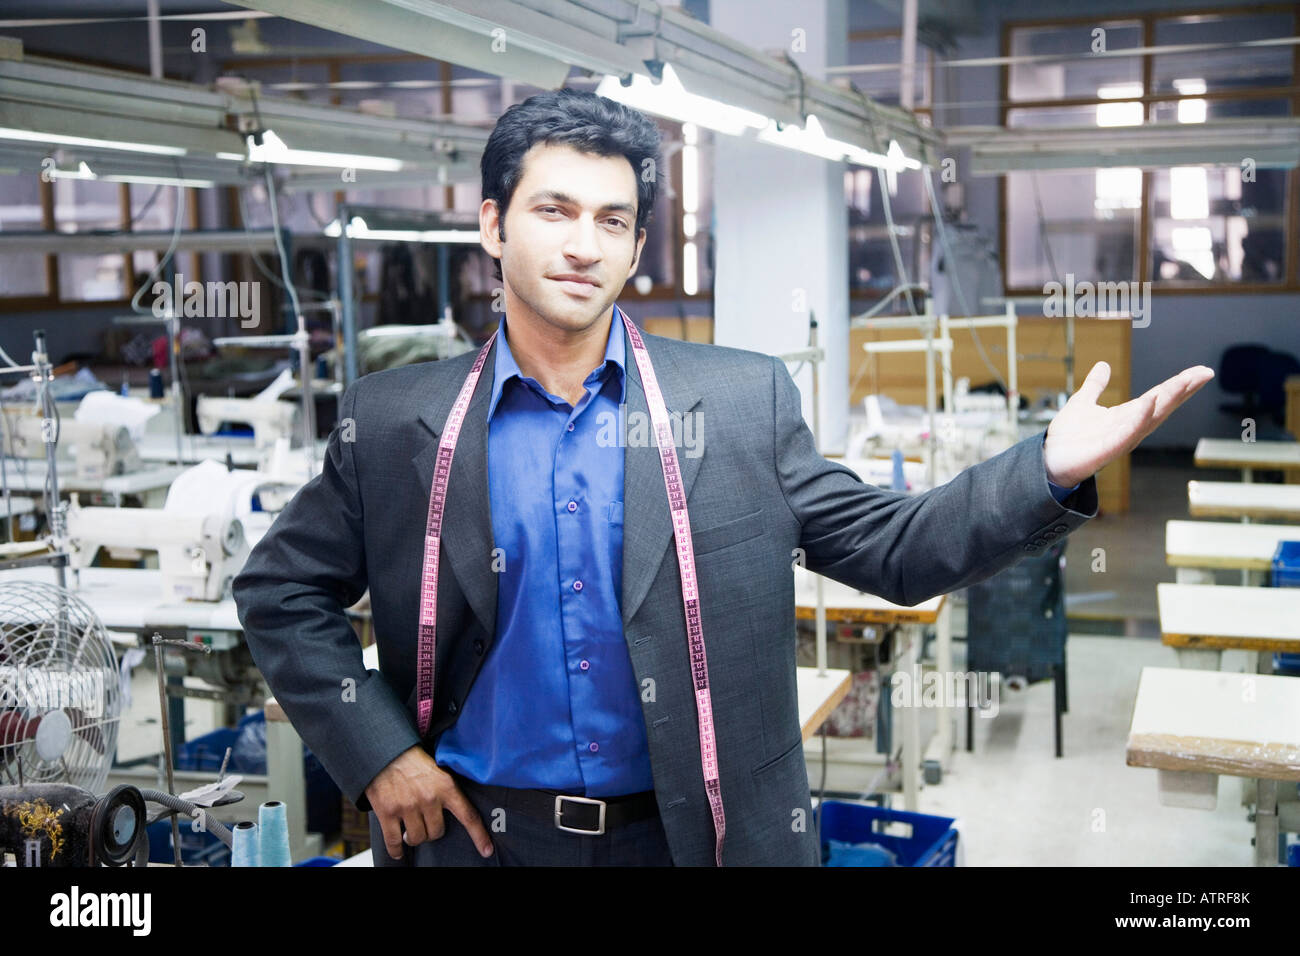 Portrait of a male fashion designer standing in a textile industry - Stock Image